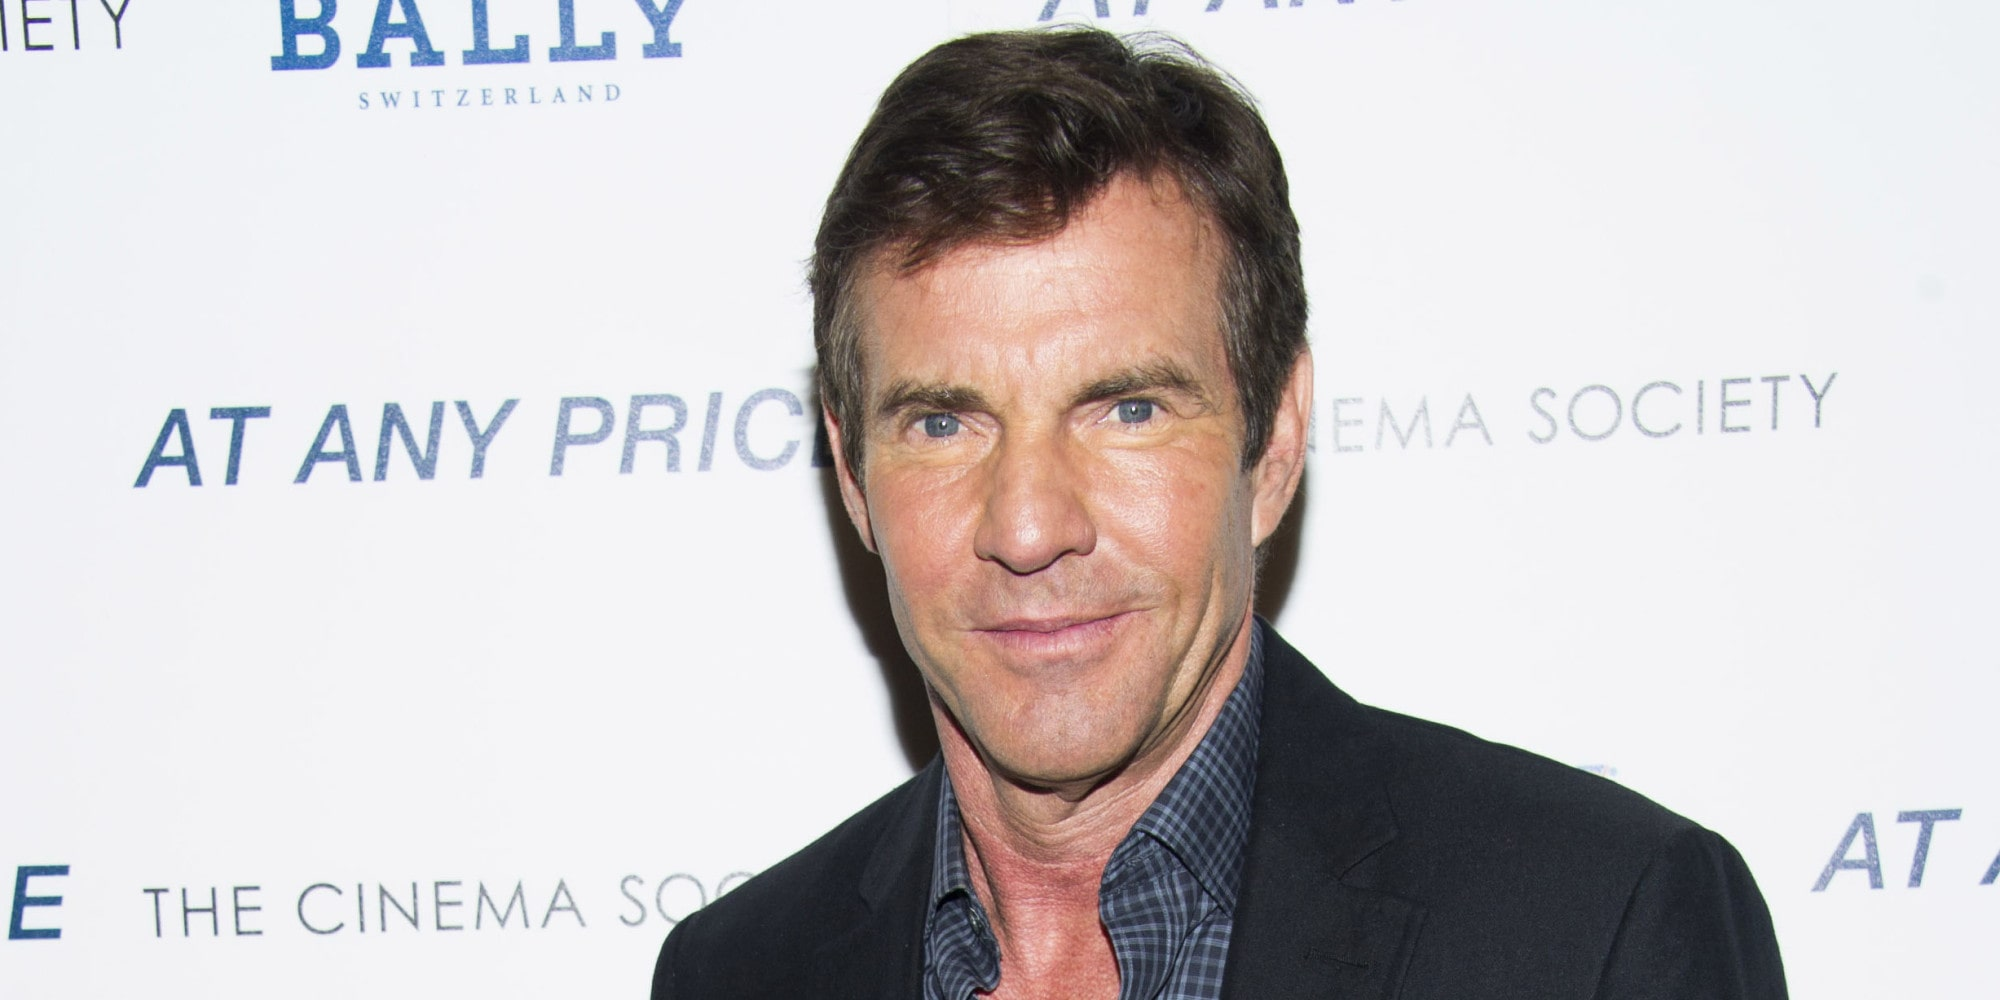 Dennis Quaid Background